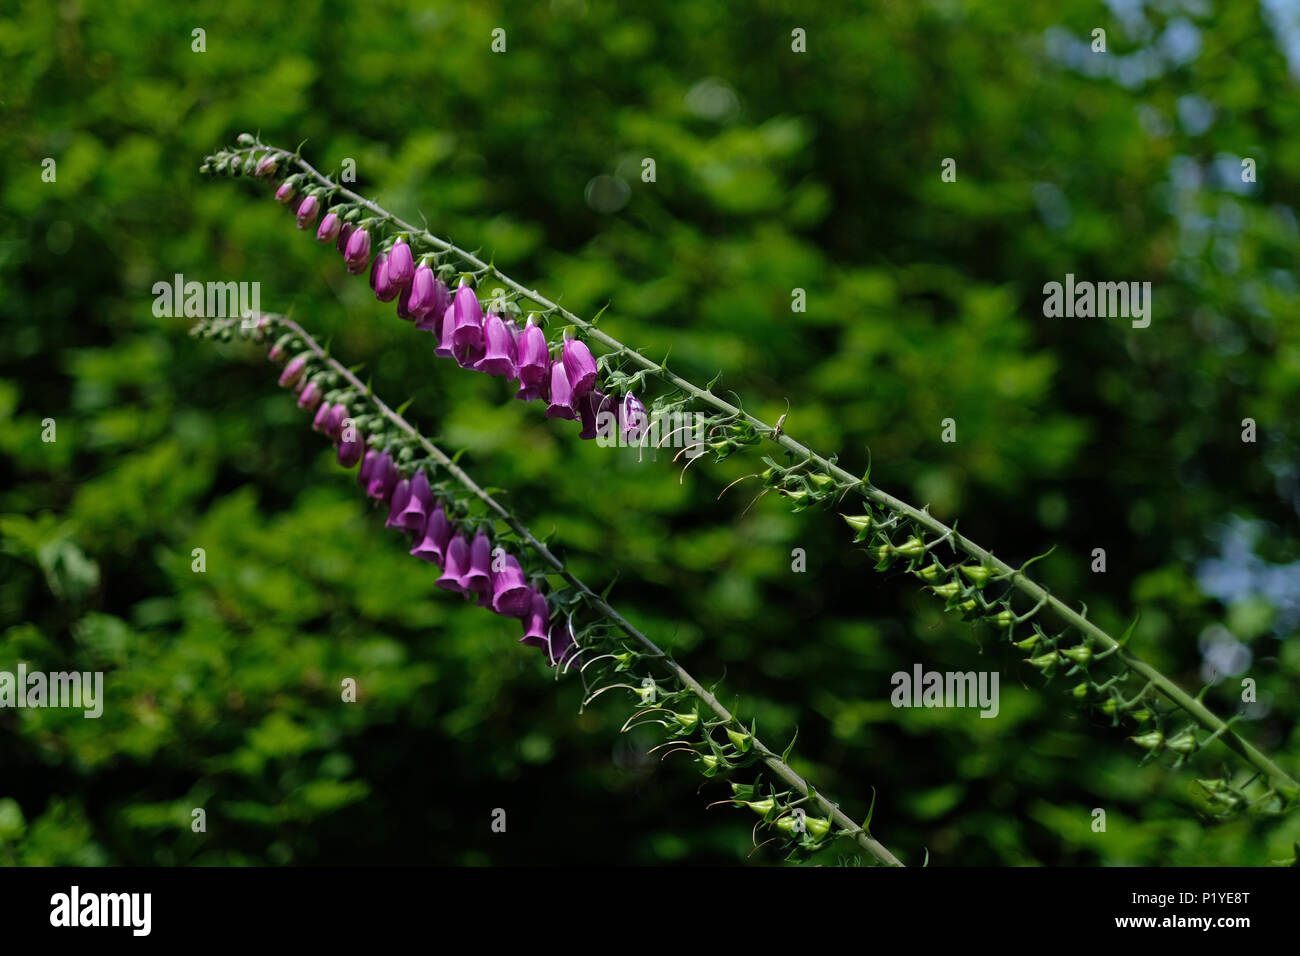 FOXGLOVES WITH BLURRED BACKGROUND - Stock Image